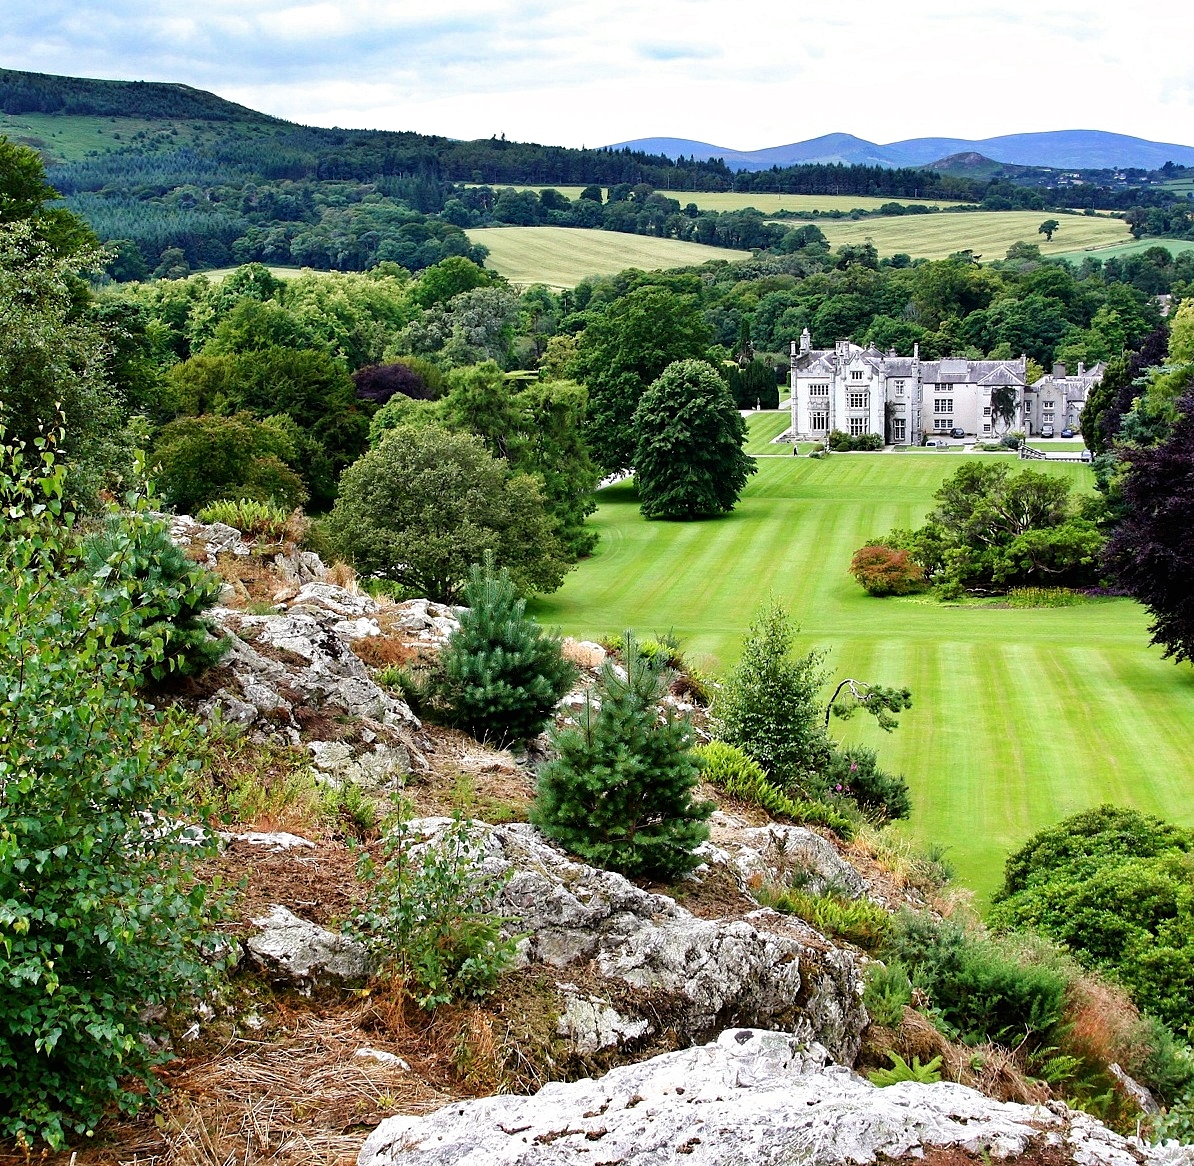 Looking back at Kilruddery House & Gardens, Bray, Co Wicklow